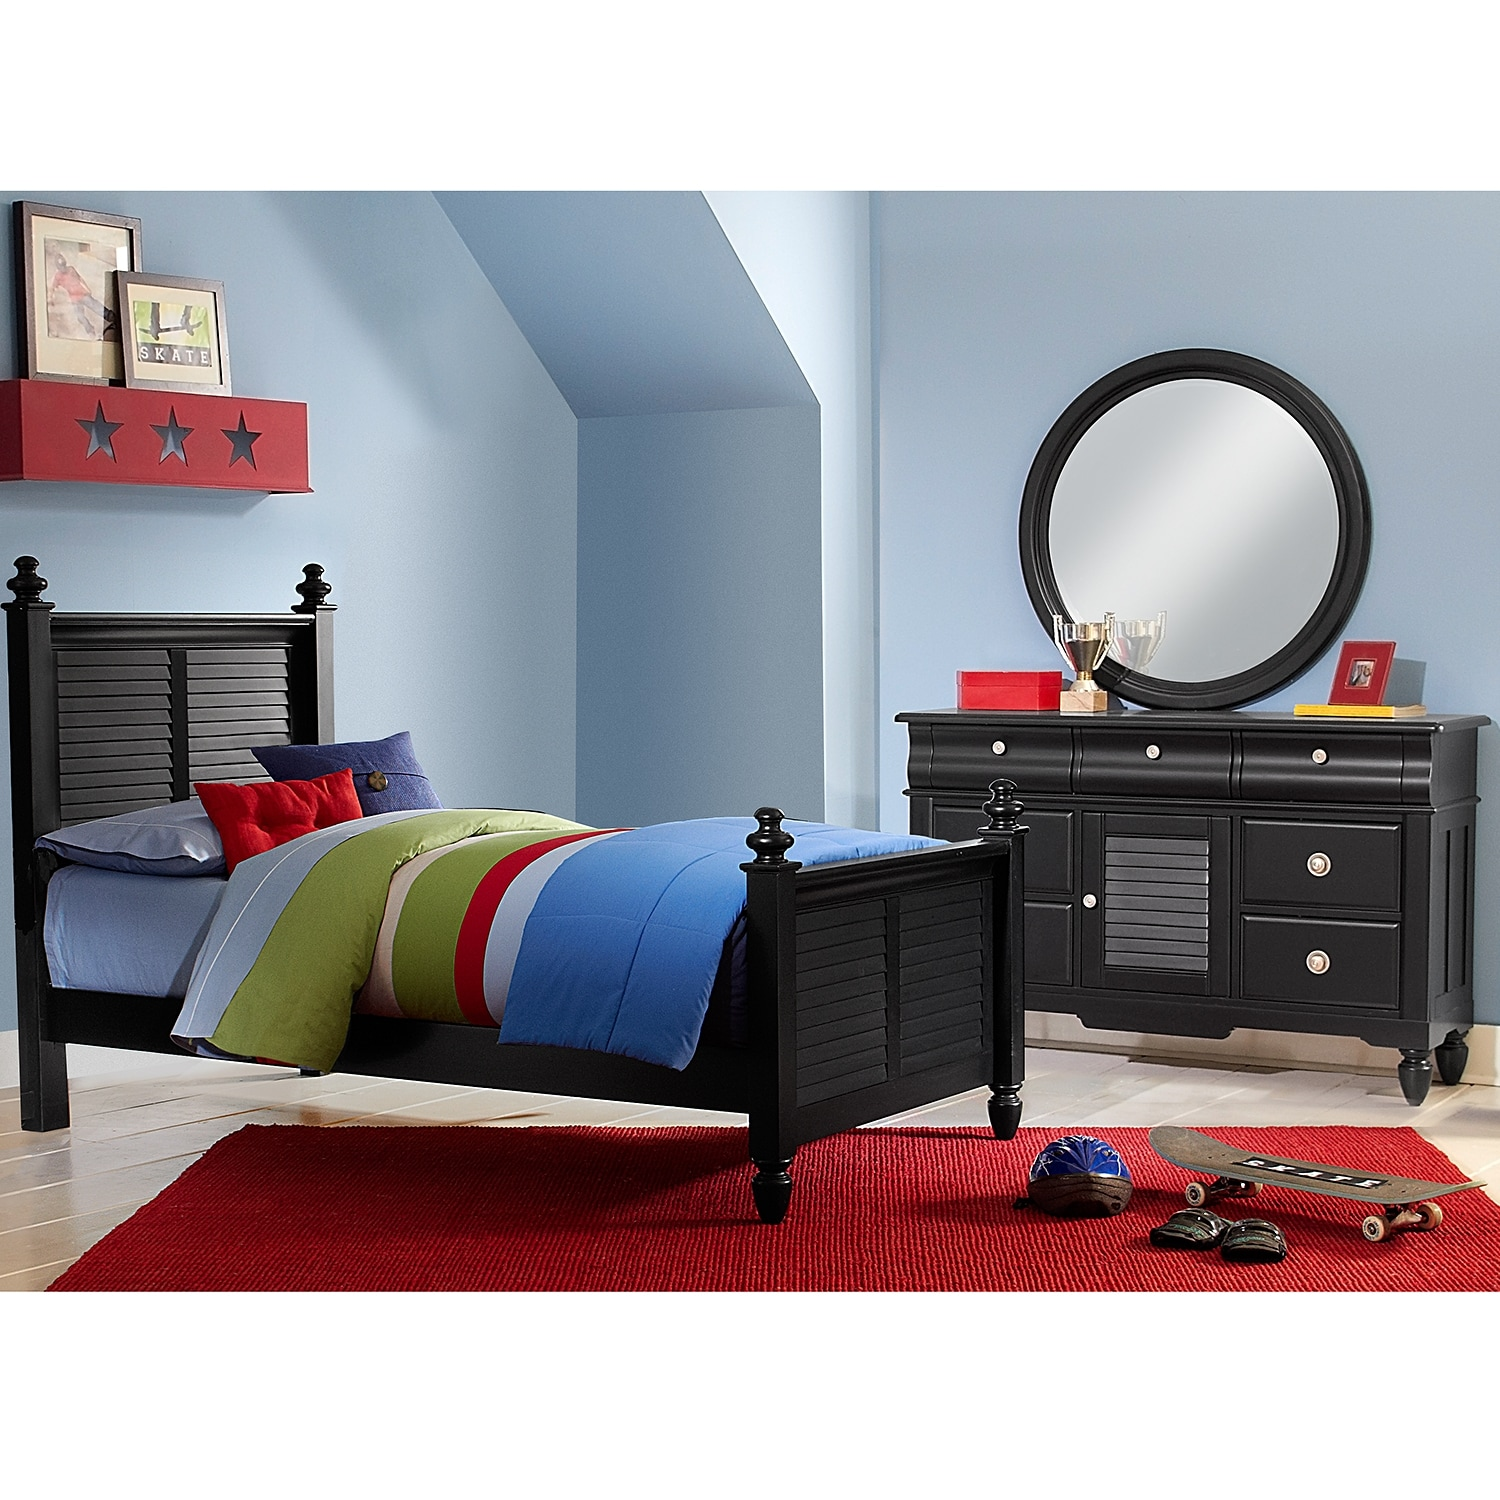 Kids Furniture - Seaside 5-Piece Twin Bedroom Set - Black